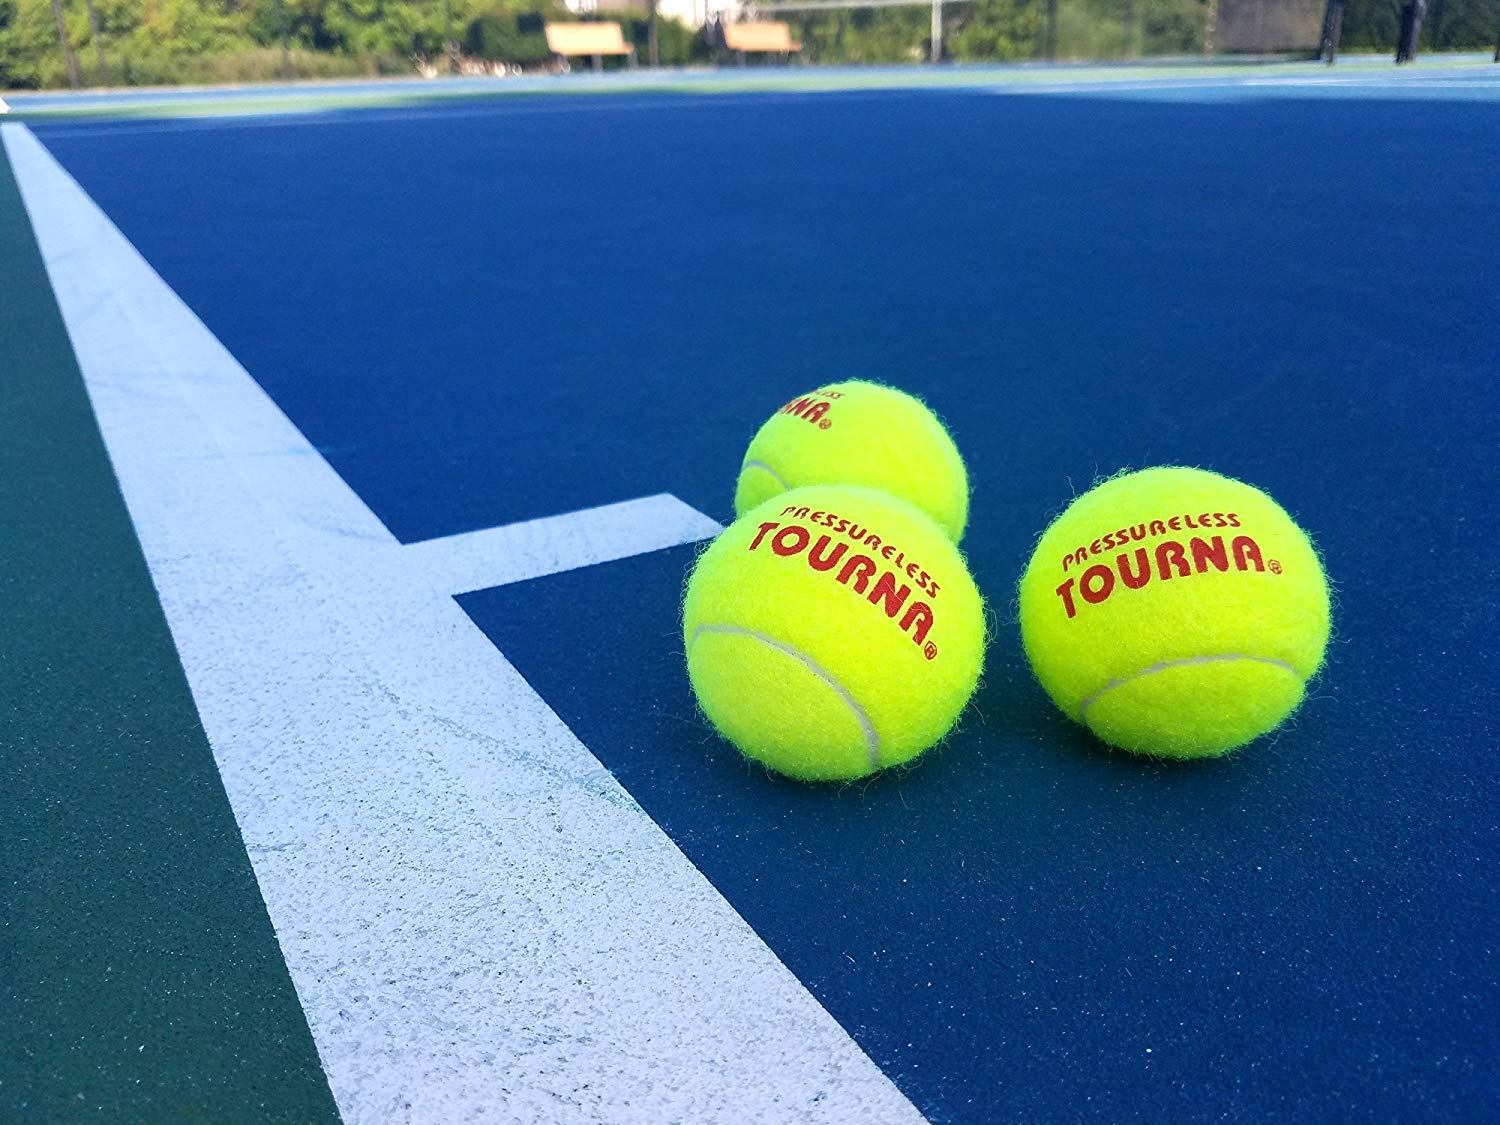 Pressureless Tennis Ball (2-Pack/ 120 Total) by Tourna (Image #2)